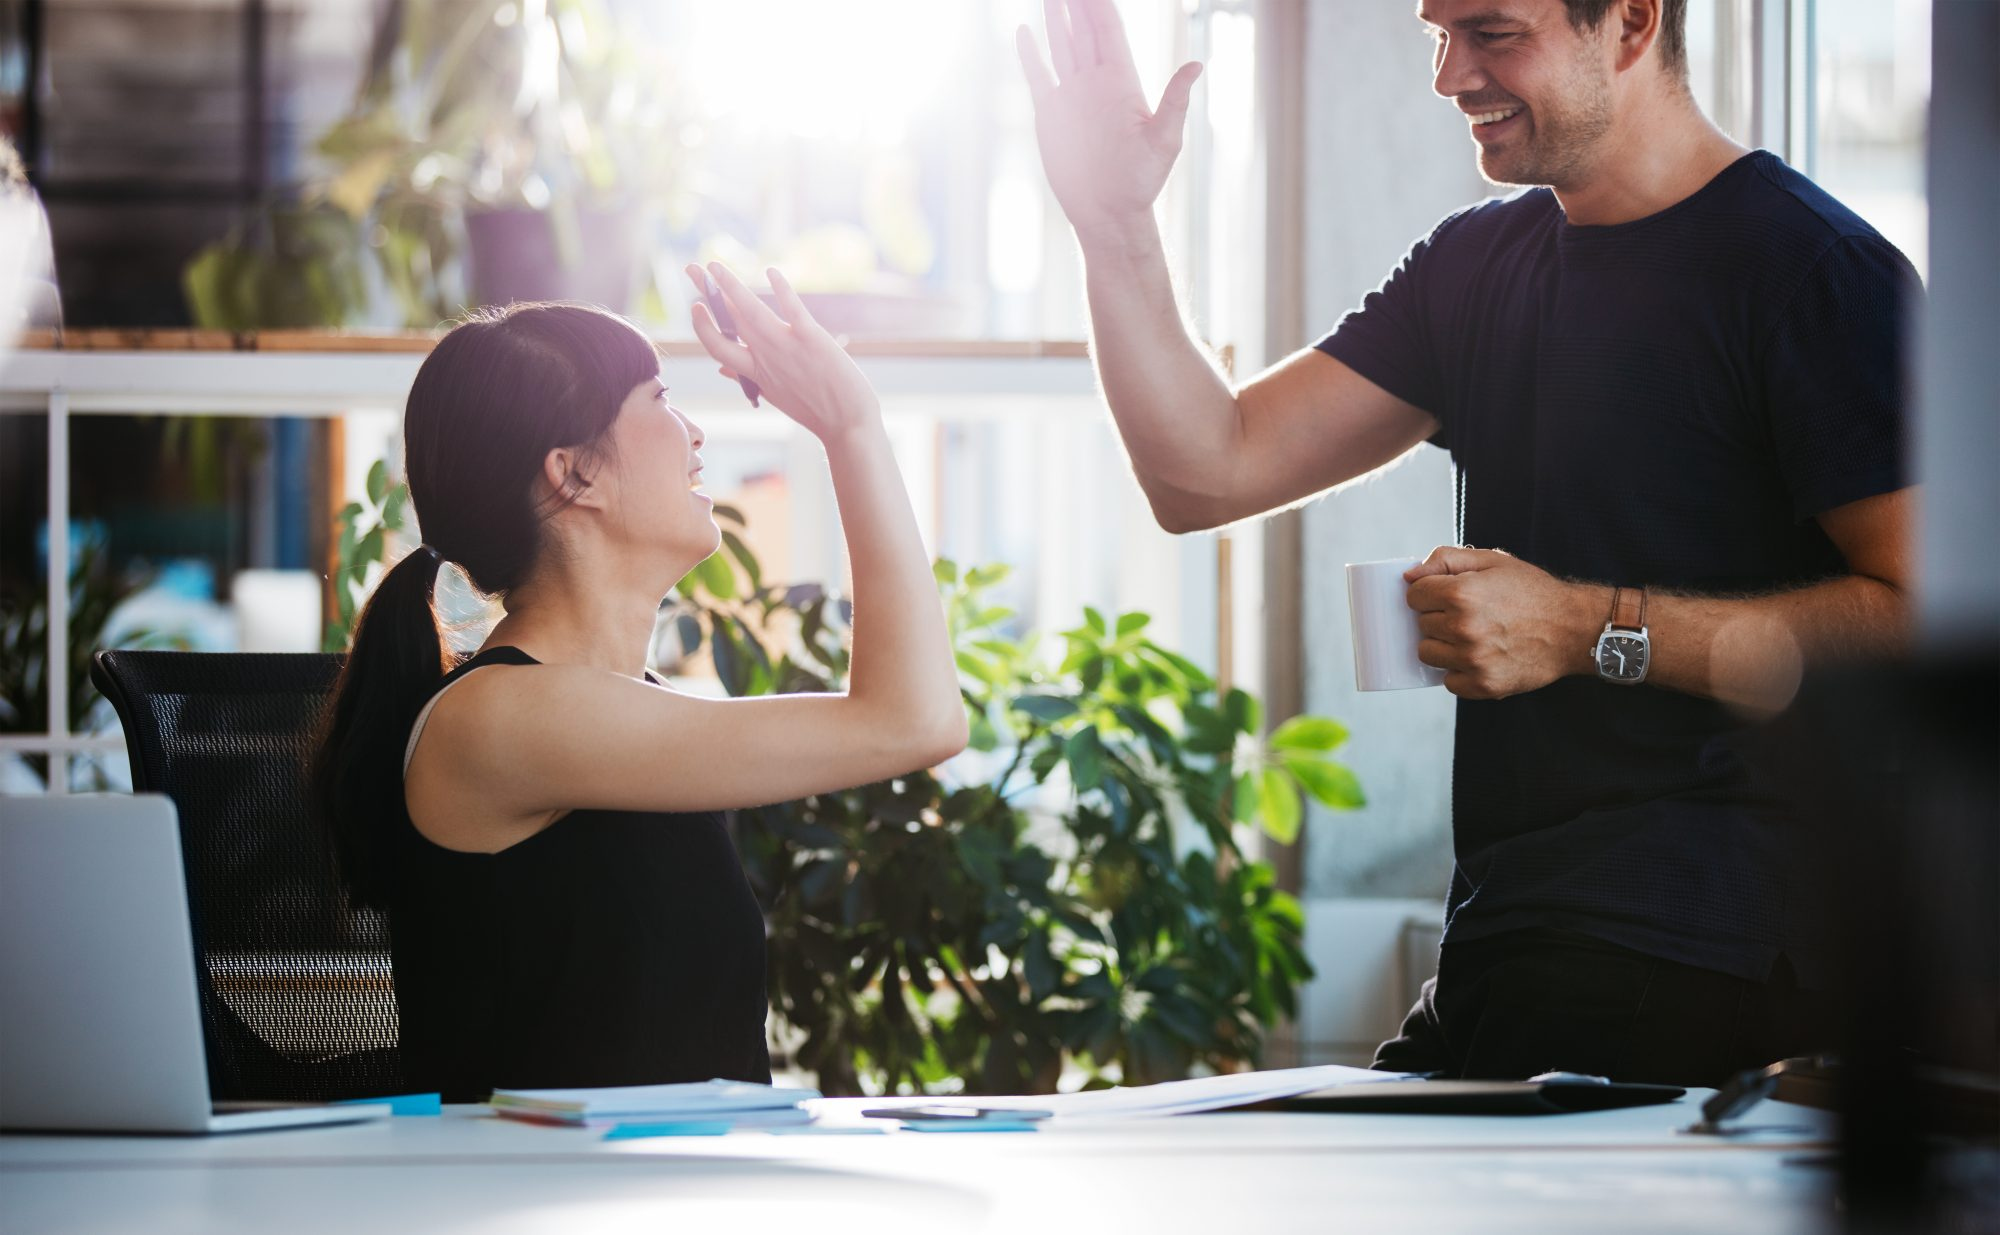 Man and woman giving a high-five in an office setting.